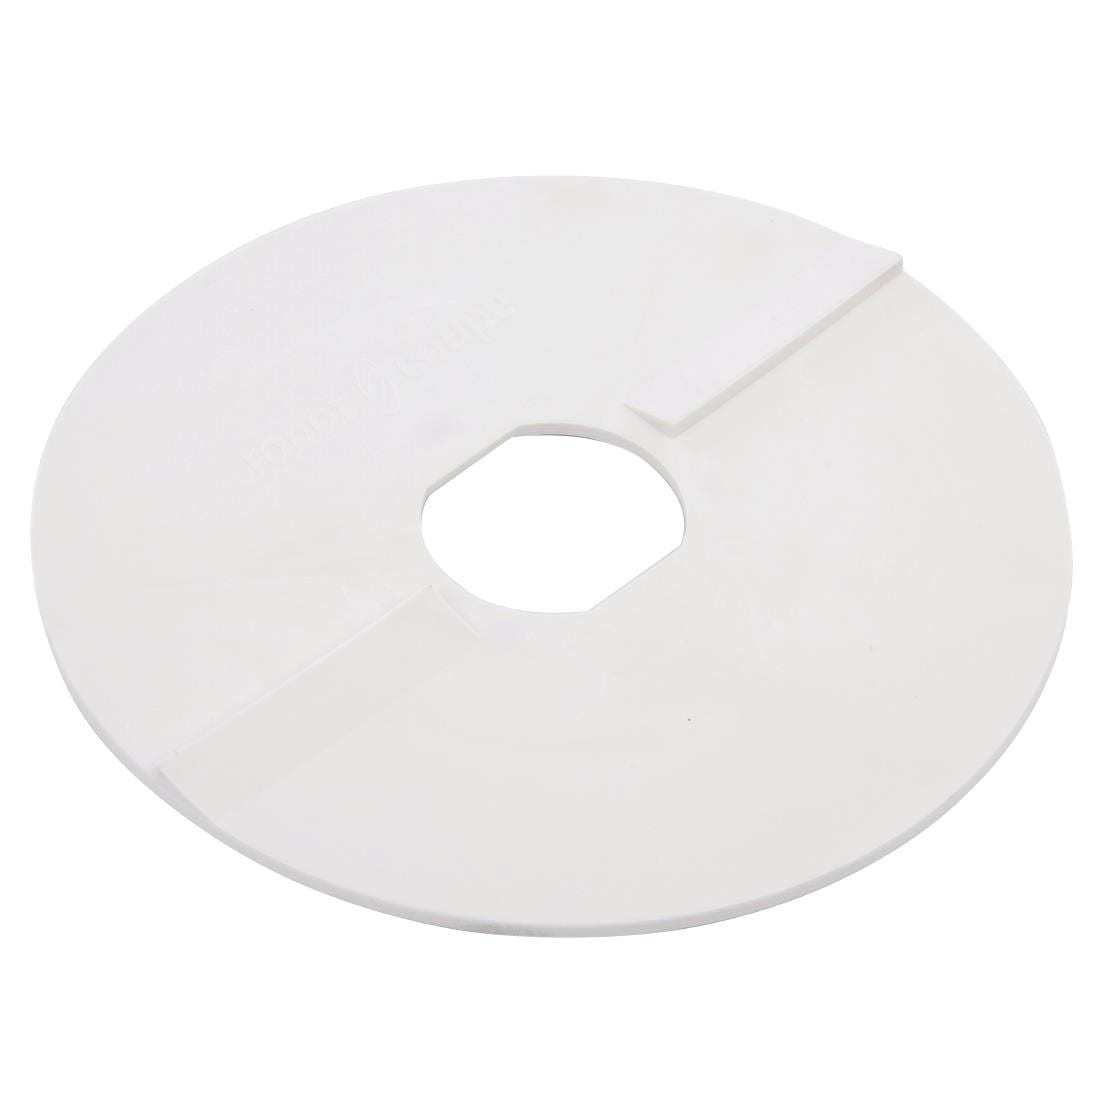 Robot Coupe Sling Plate – Ref 117092